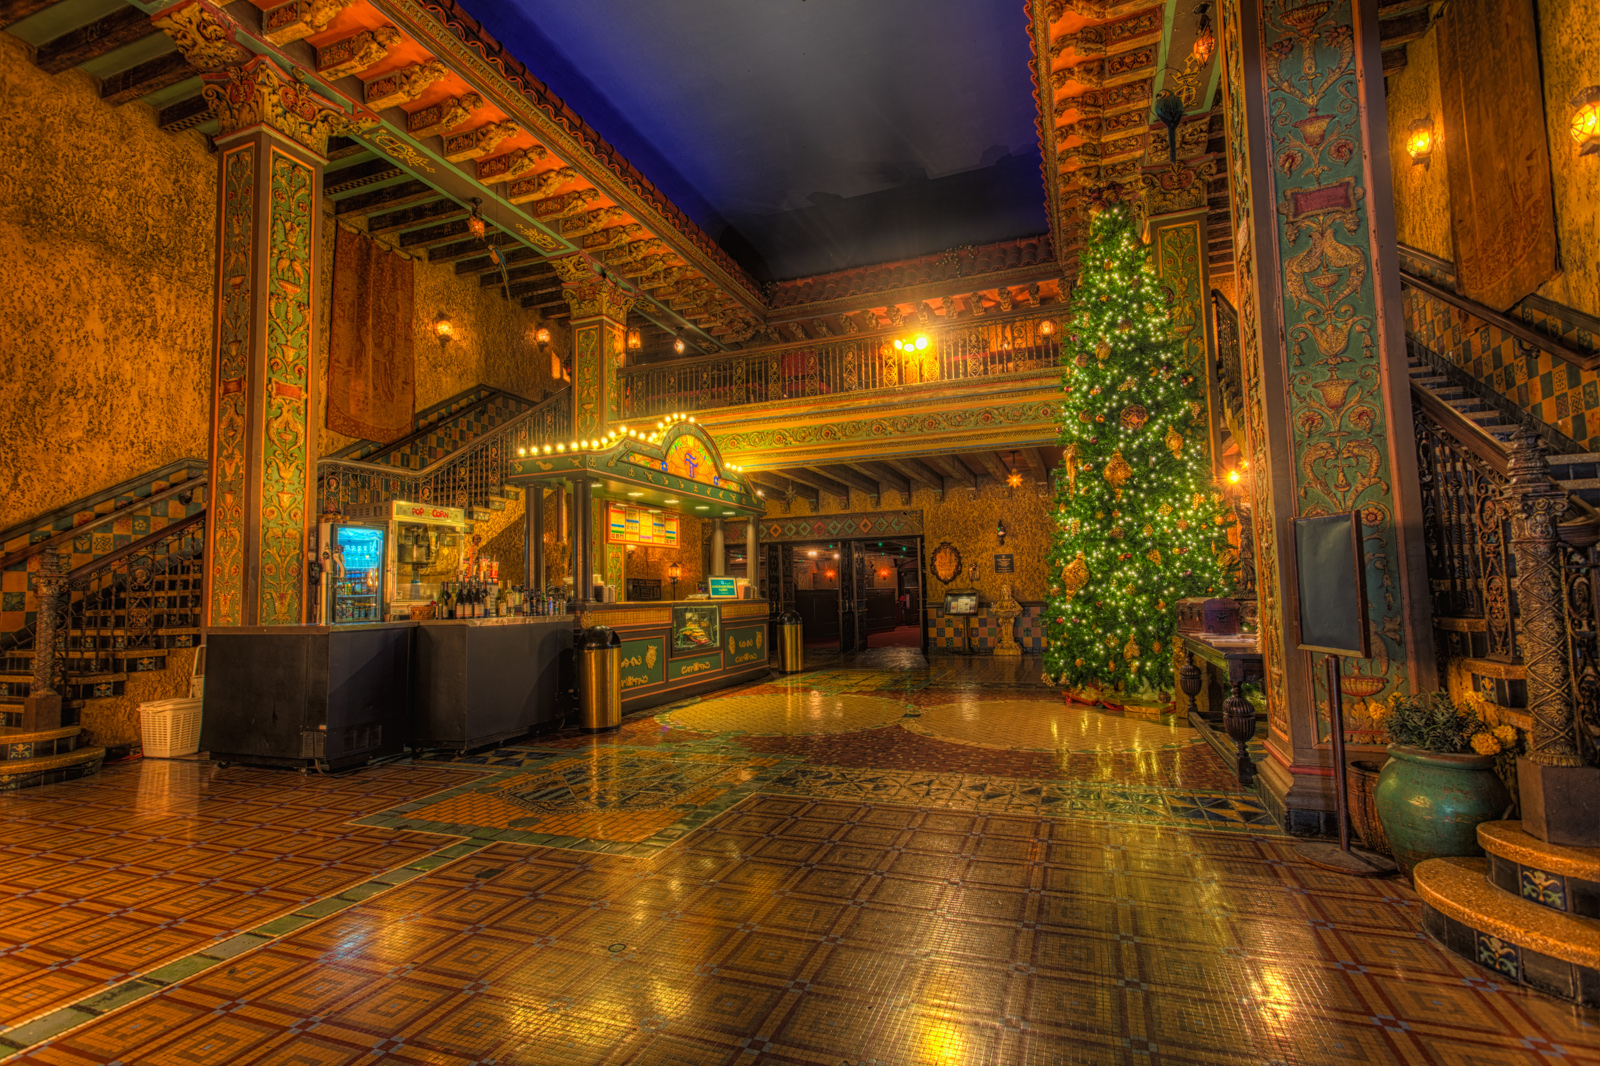 Tampa Theater Lobby with Christmas Tree